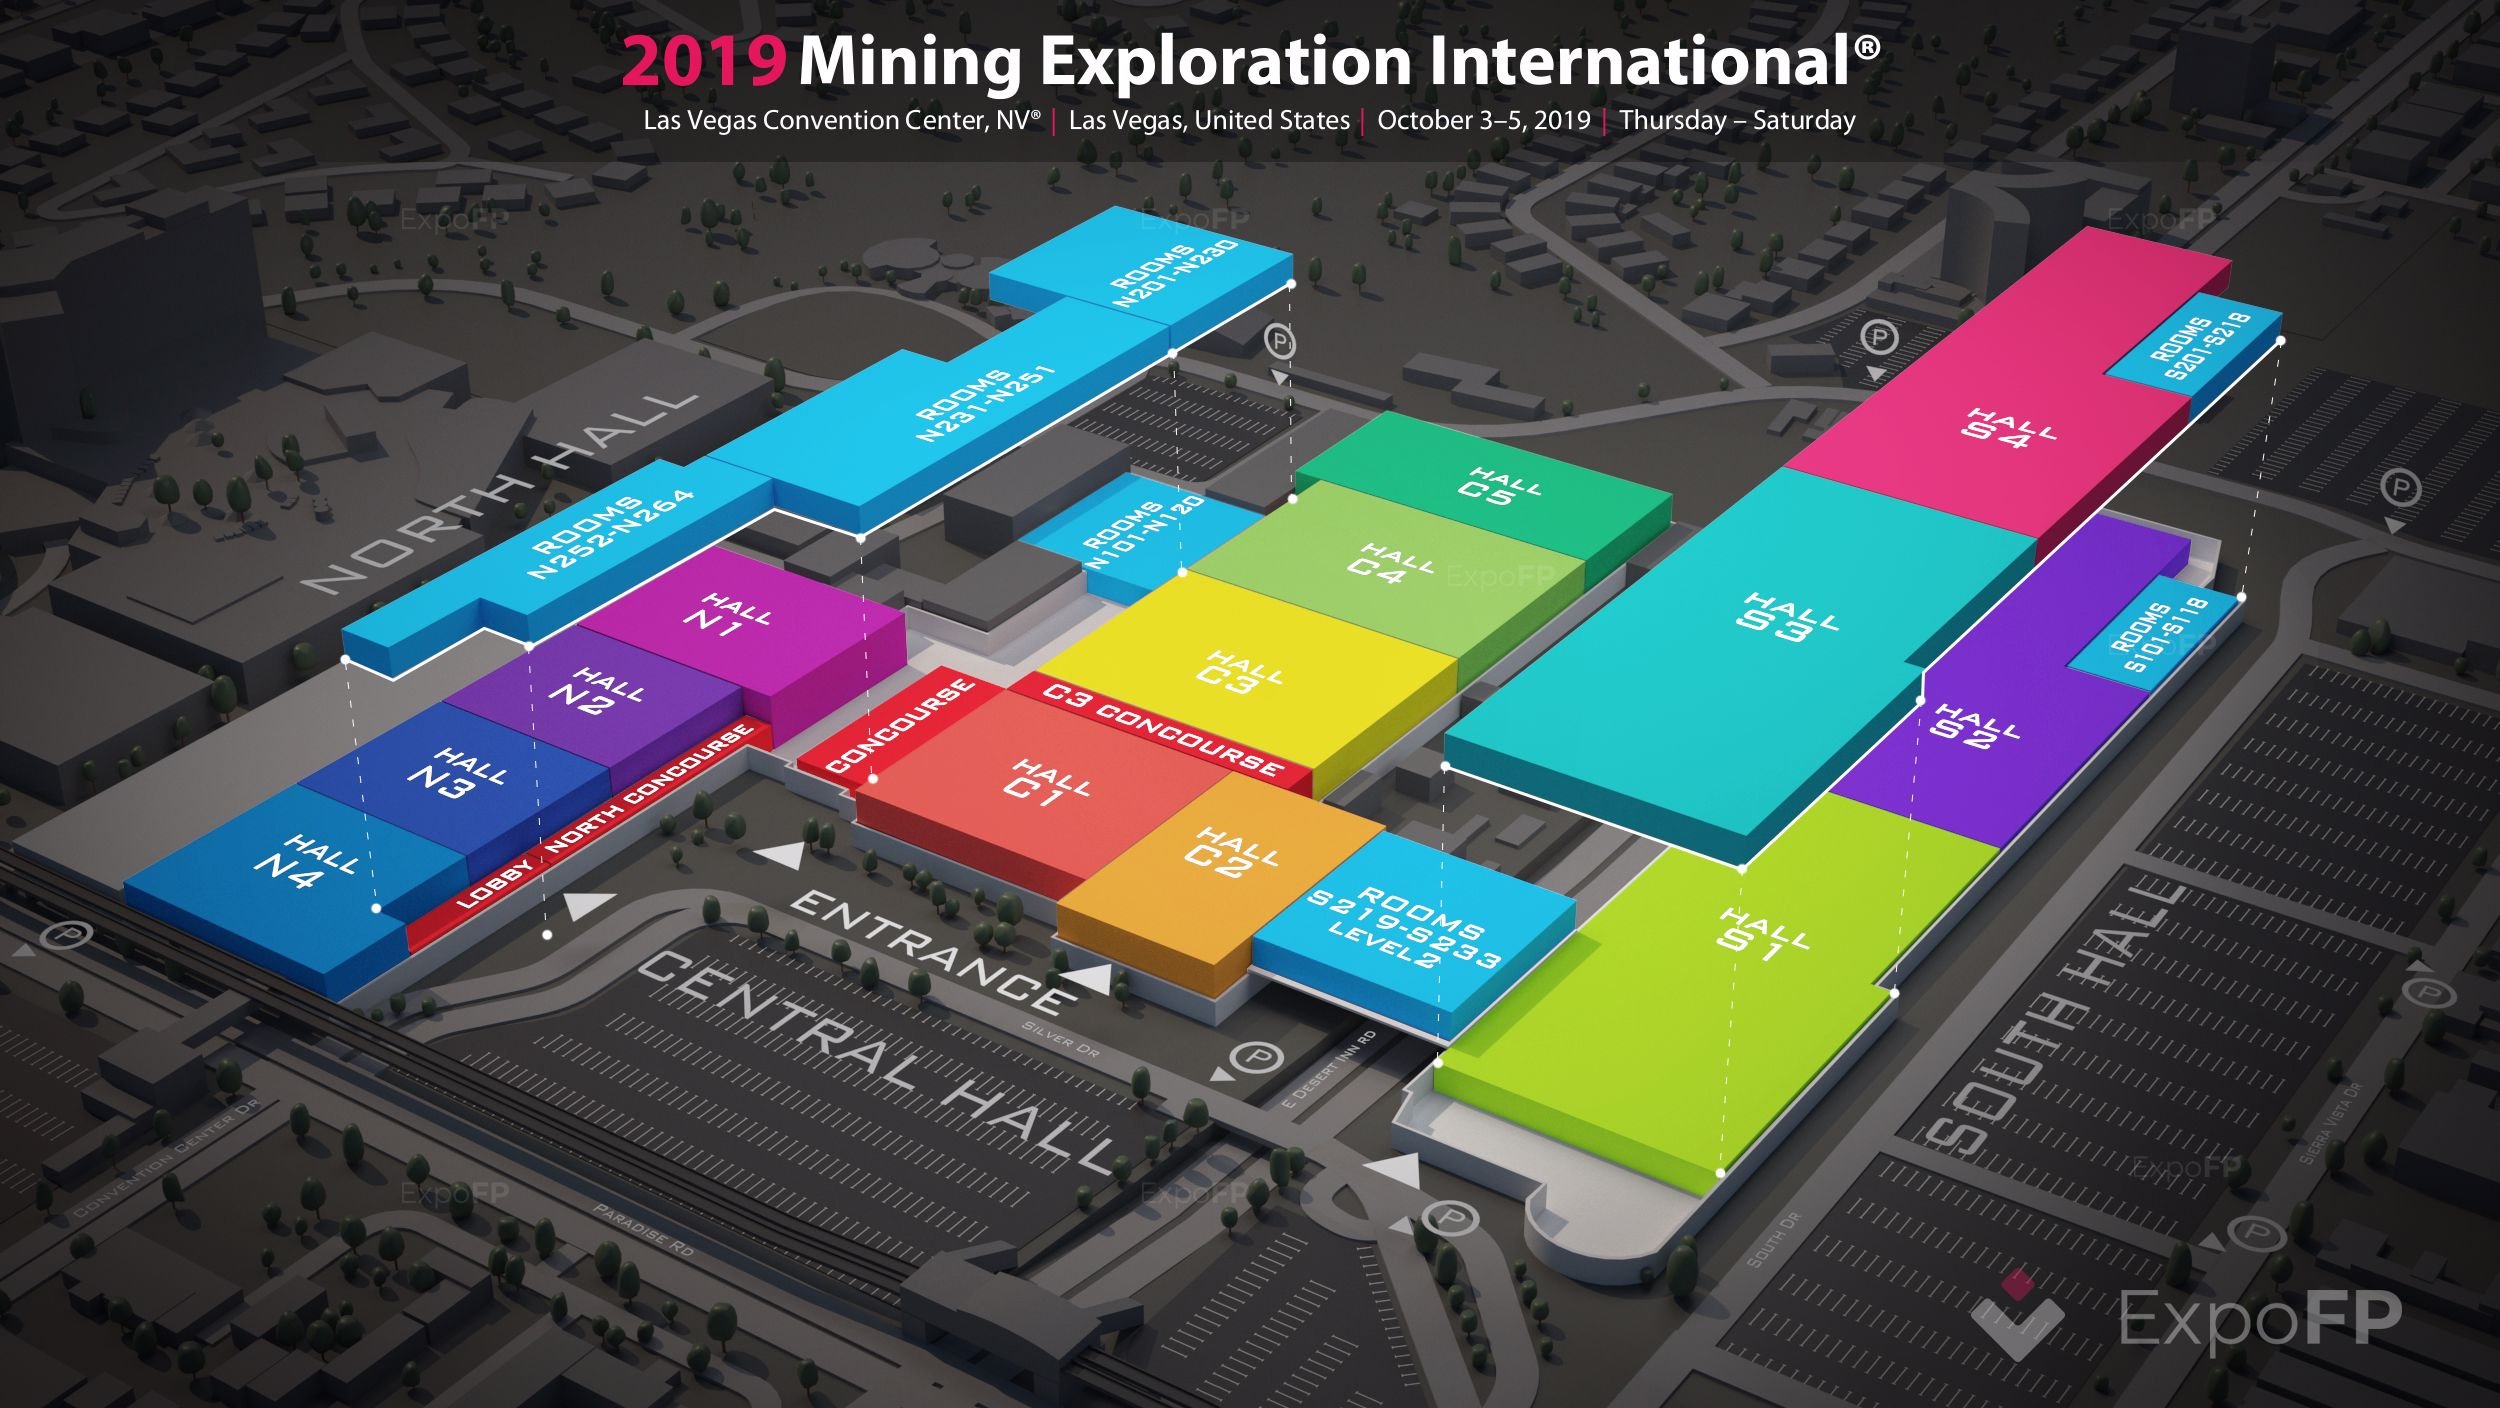 Las Vegas Convention Center Map, Las Vegas Convention Center Mining Exploration International 2019 3d Floor Plan, Las Vegas Convention Center Map